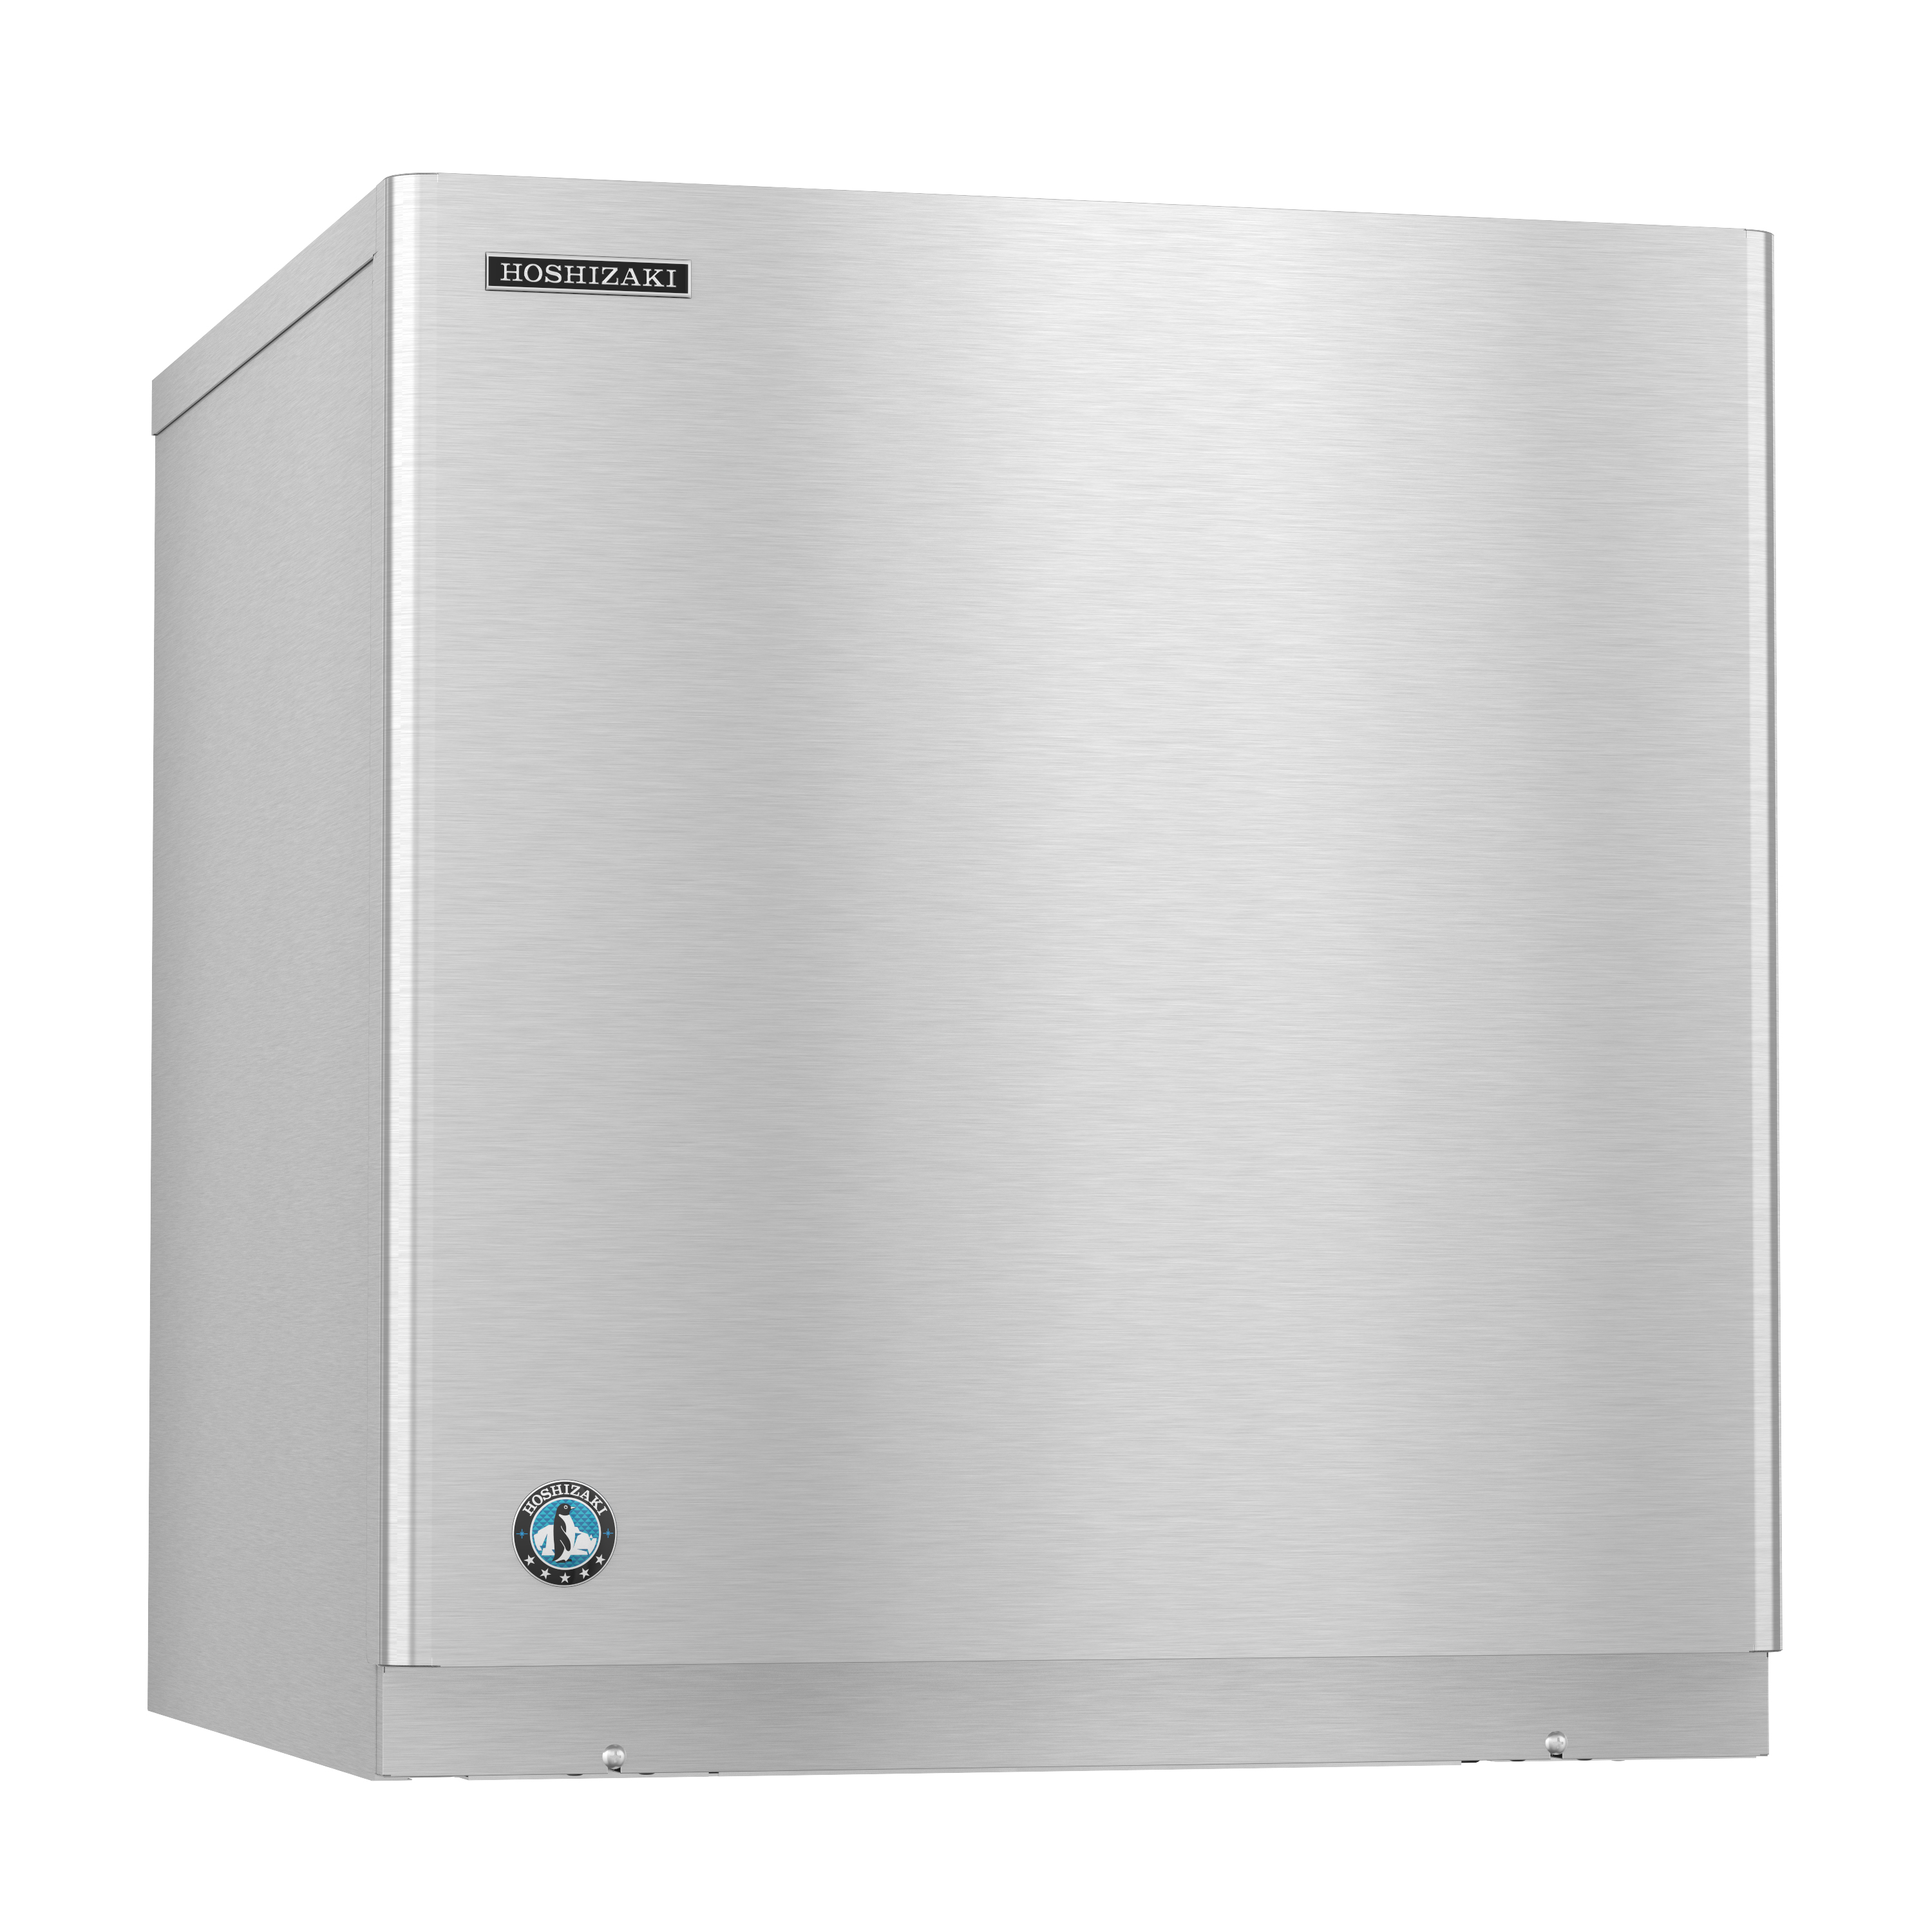 KMD-410MAH, Air-cooled, Modular, Crescent Cube Icemaker on